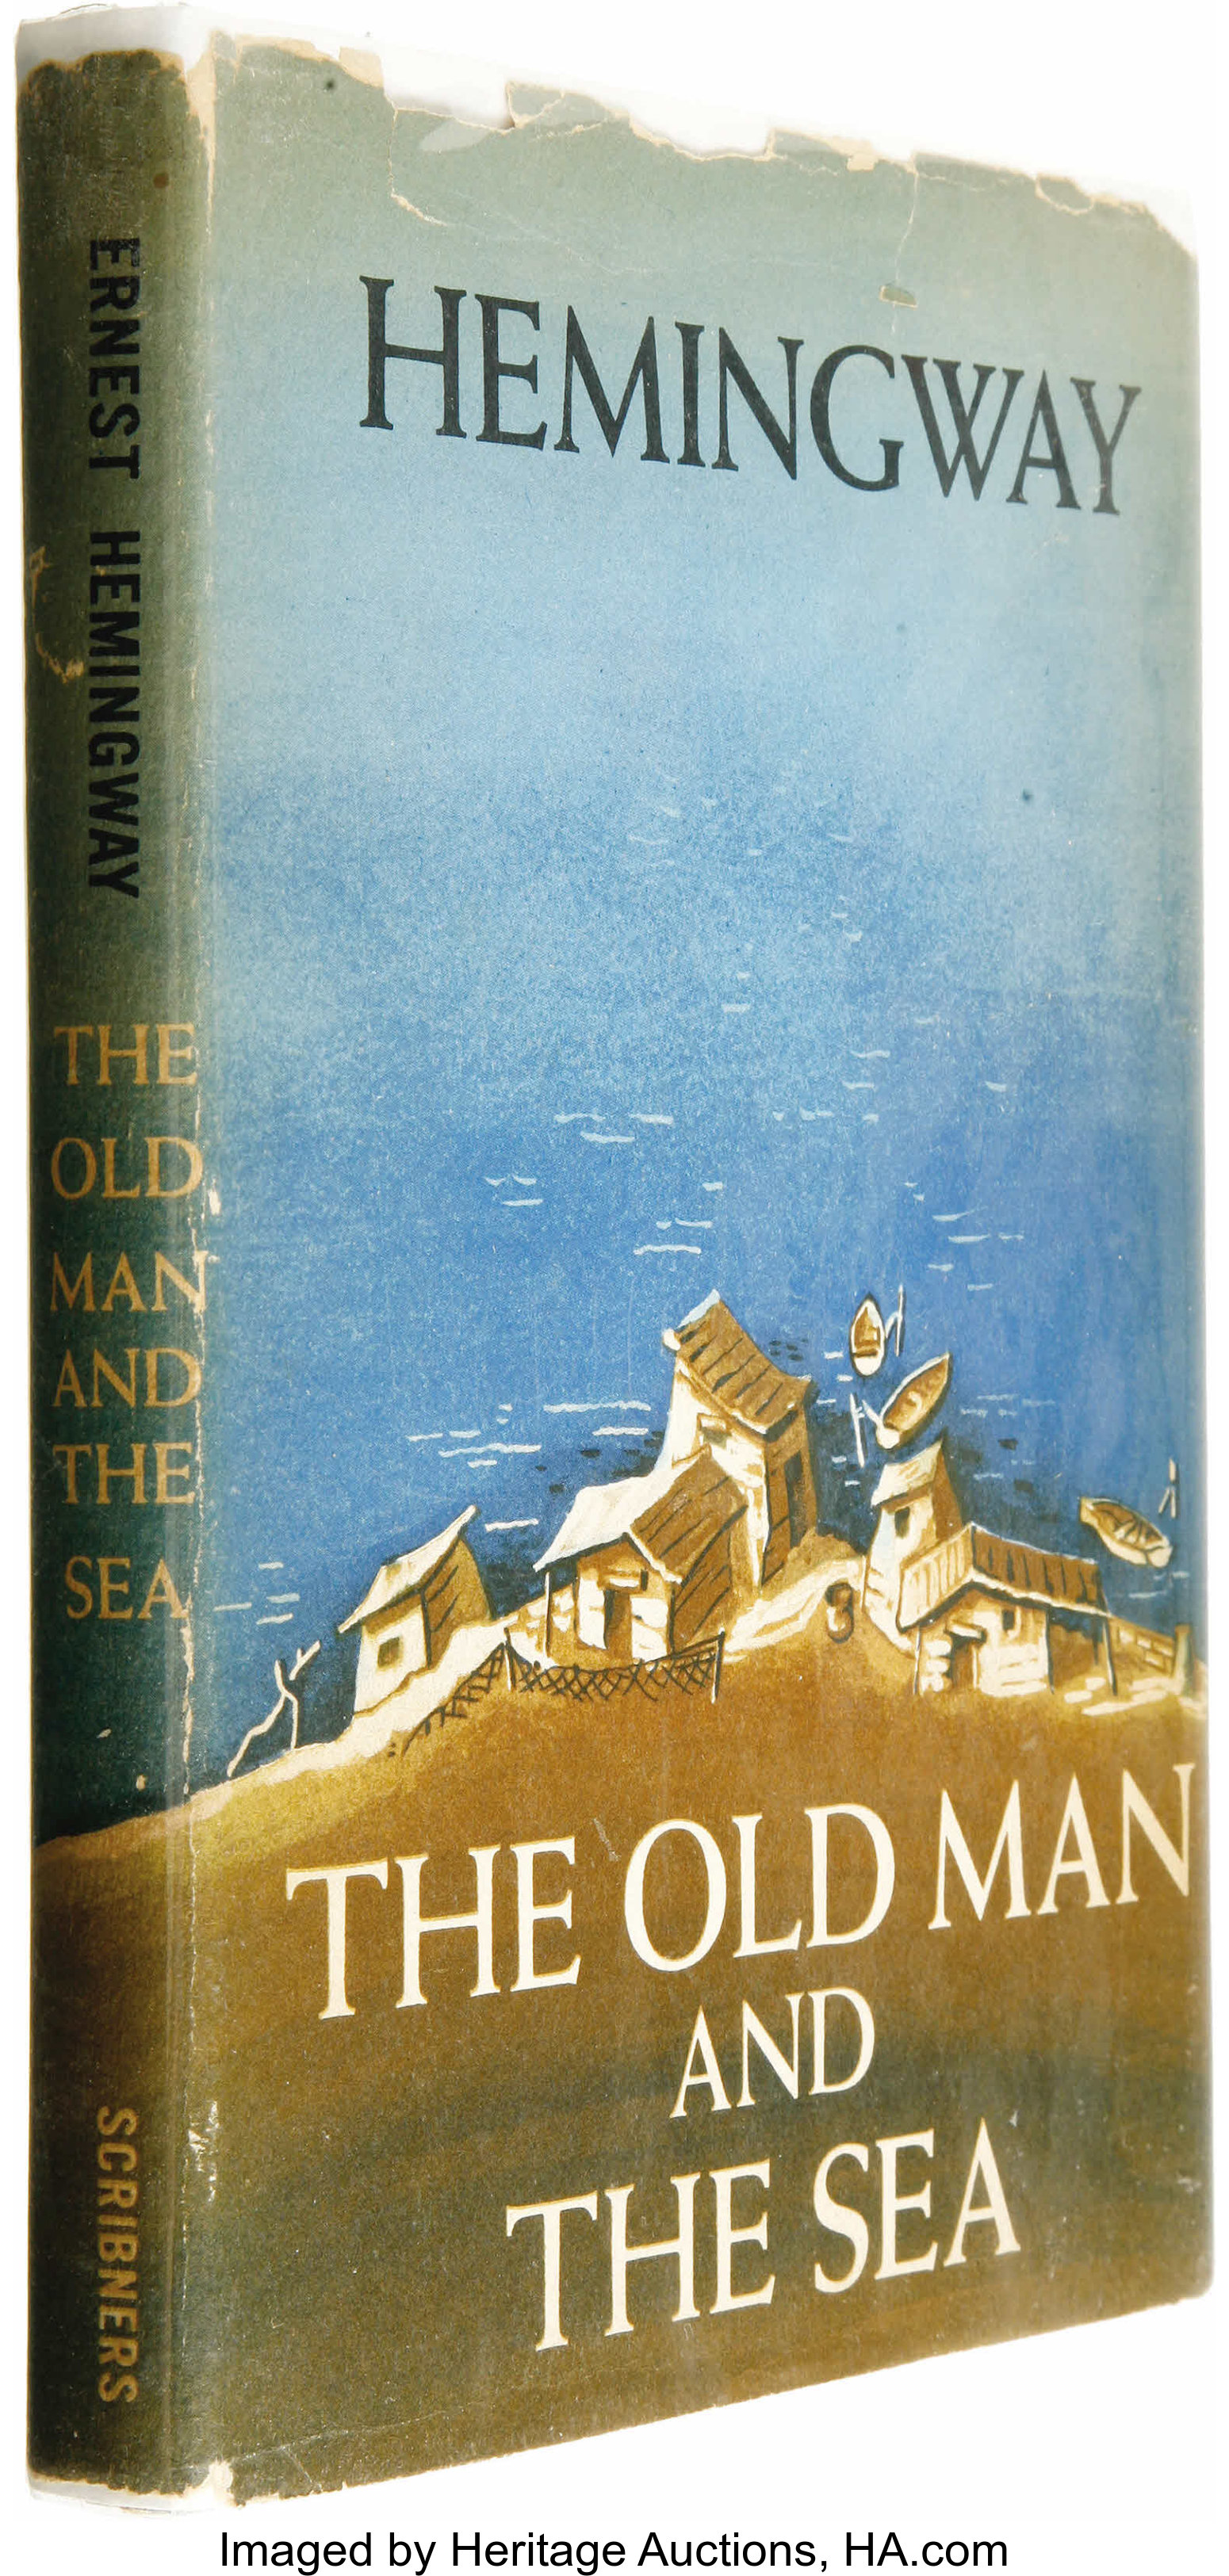 Ernest Hemingway: The Old Man and the Sea (New York: Charles